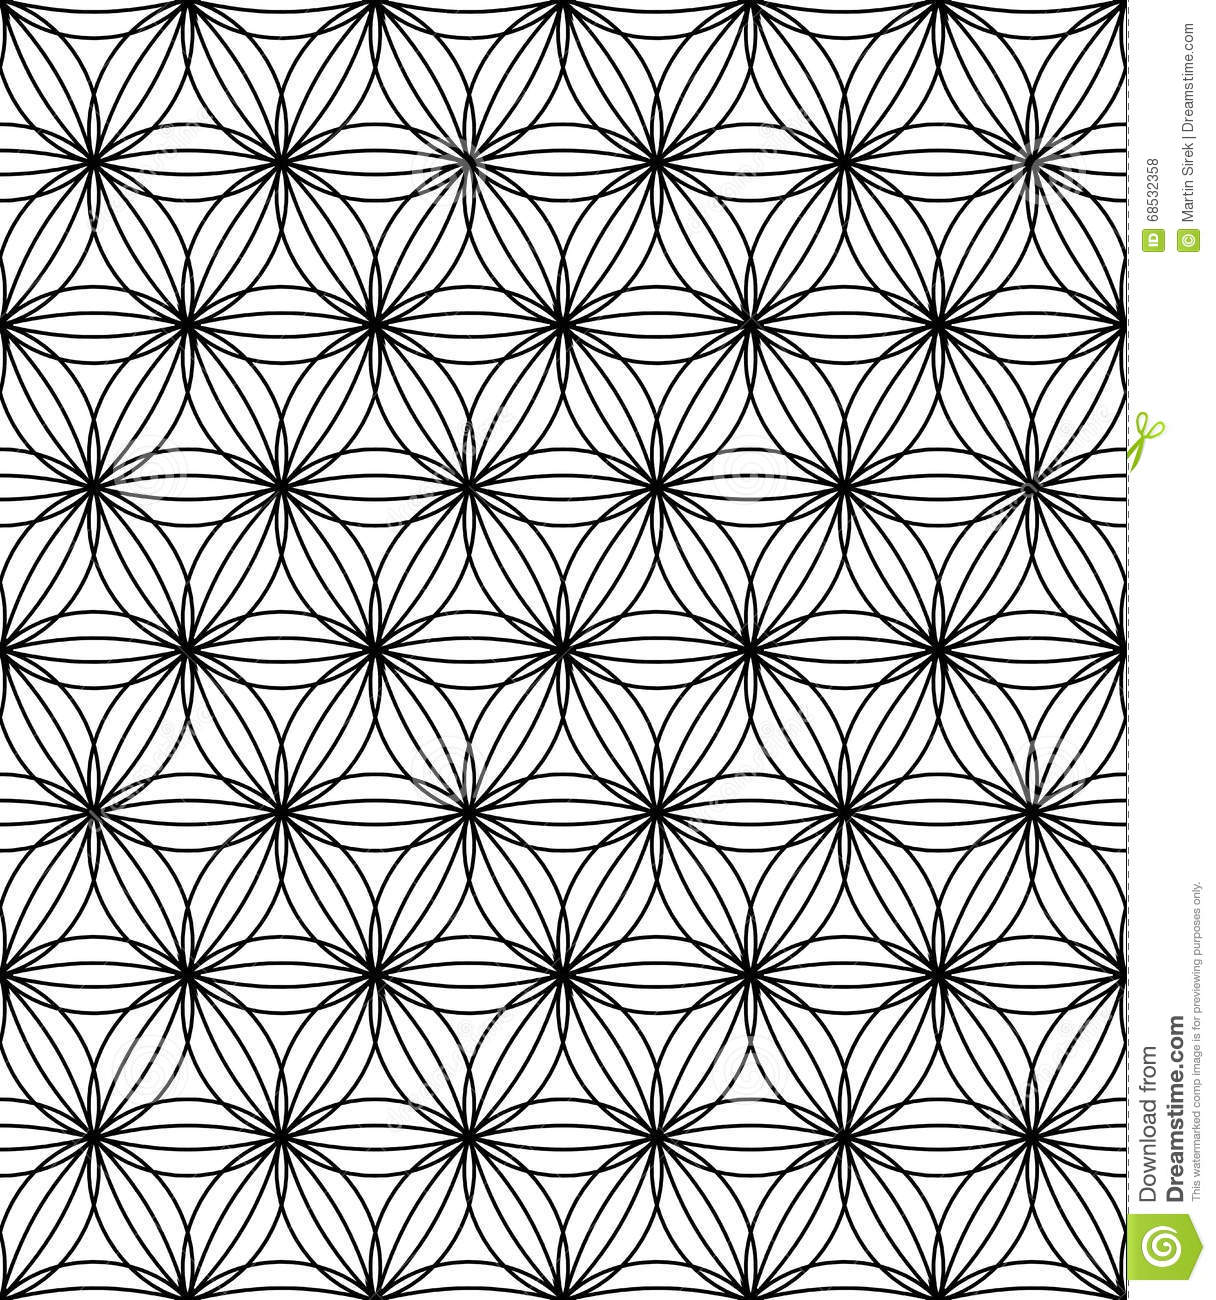 Vector Modern Seamless Sacred Geometry Pattern Flower Of Life, Black And White Abstract Stock Vector - Illustration of circle, print: 68532358